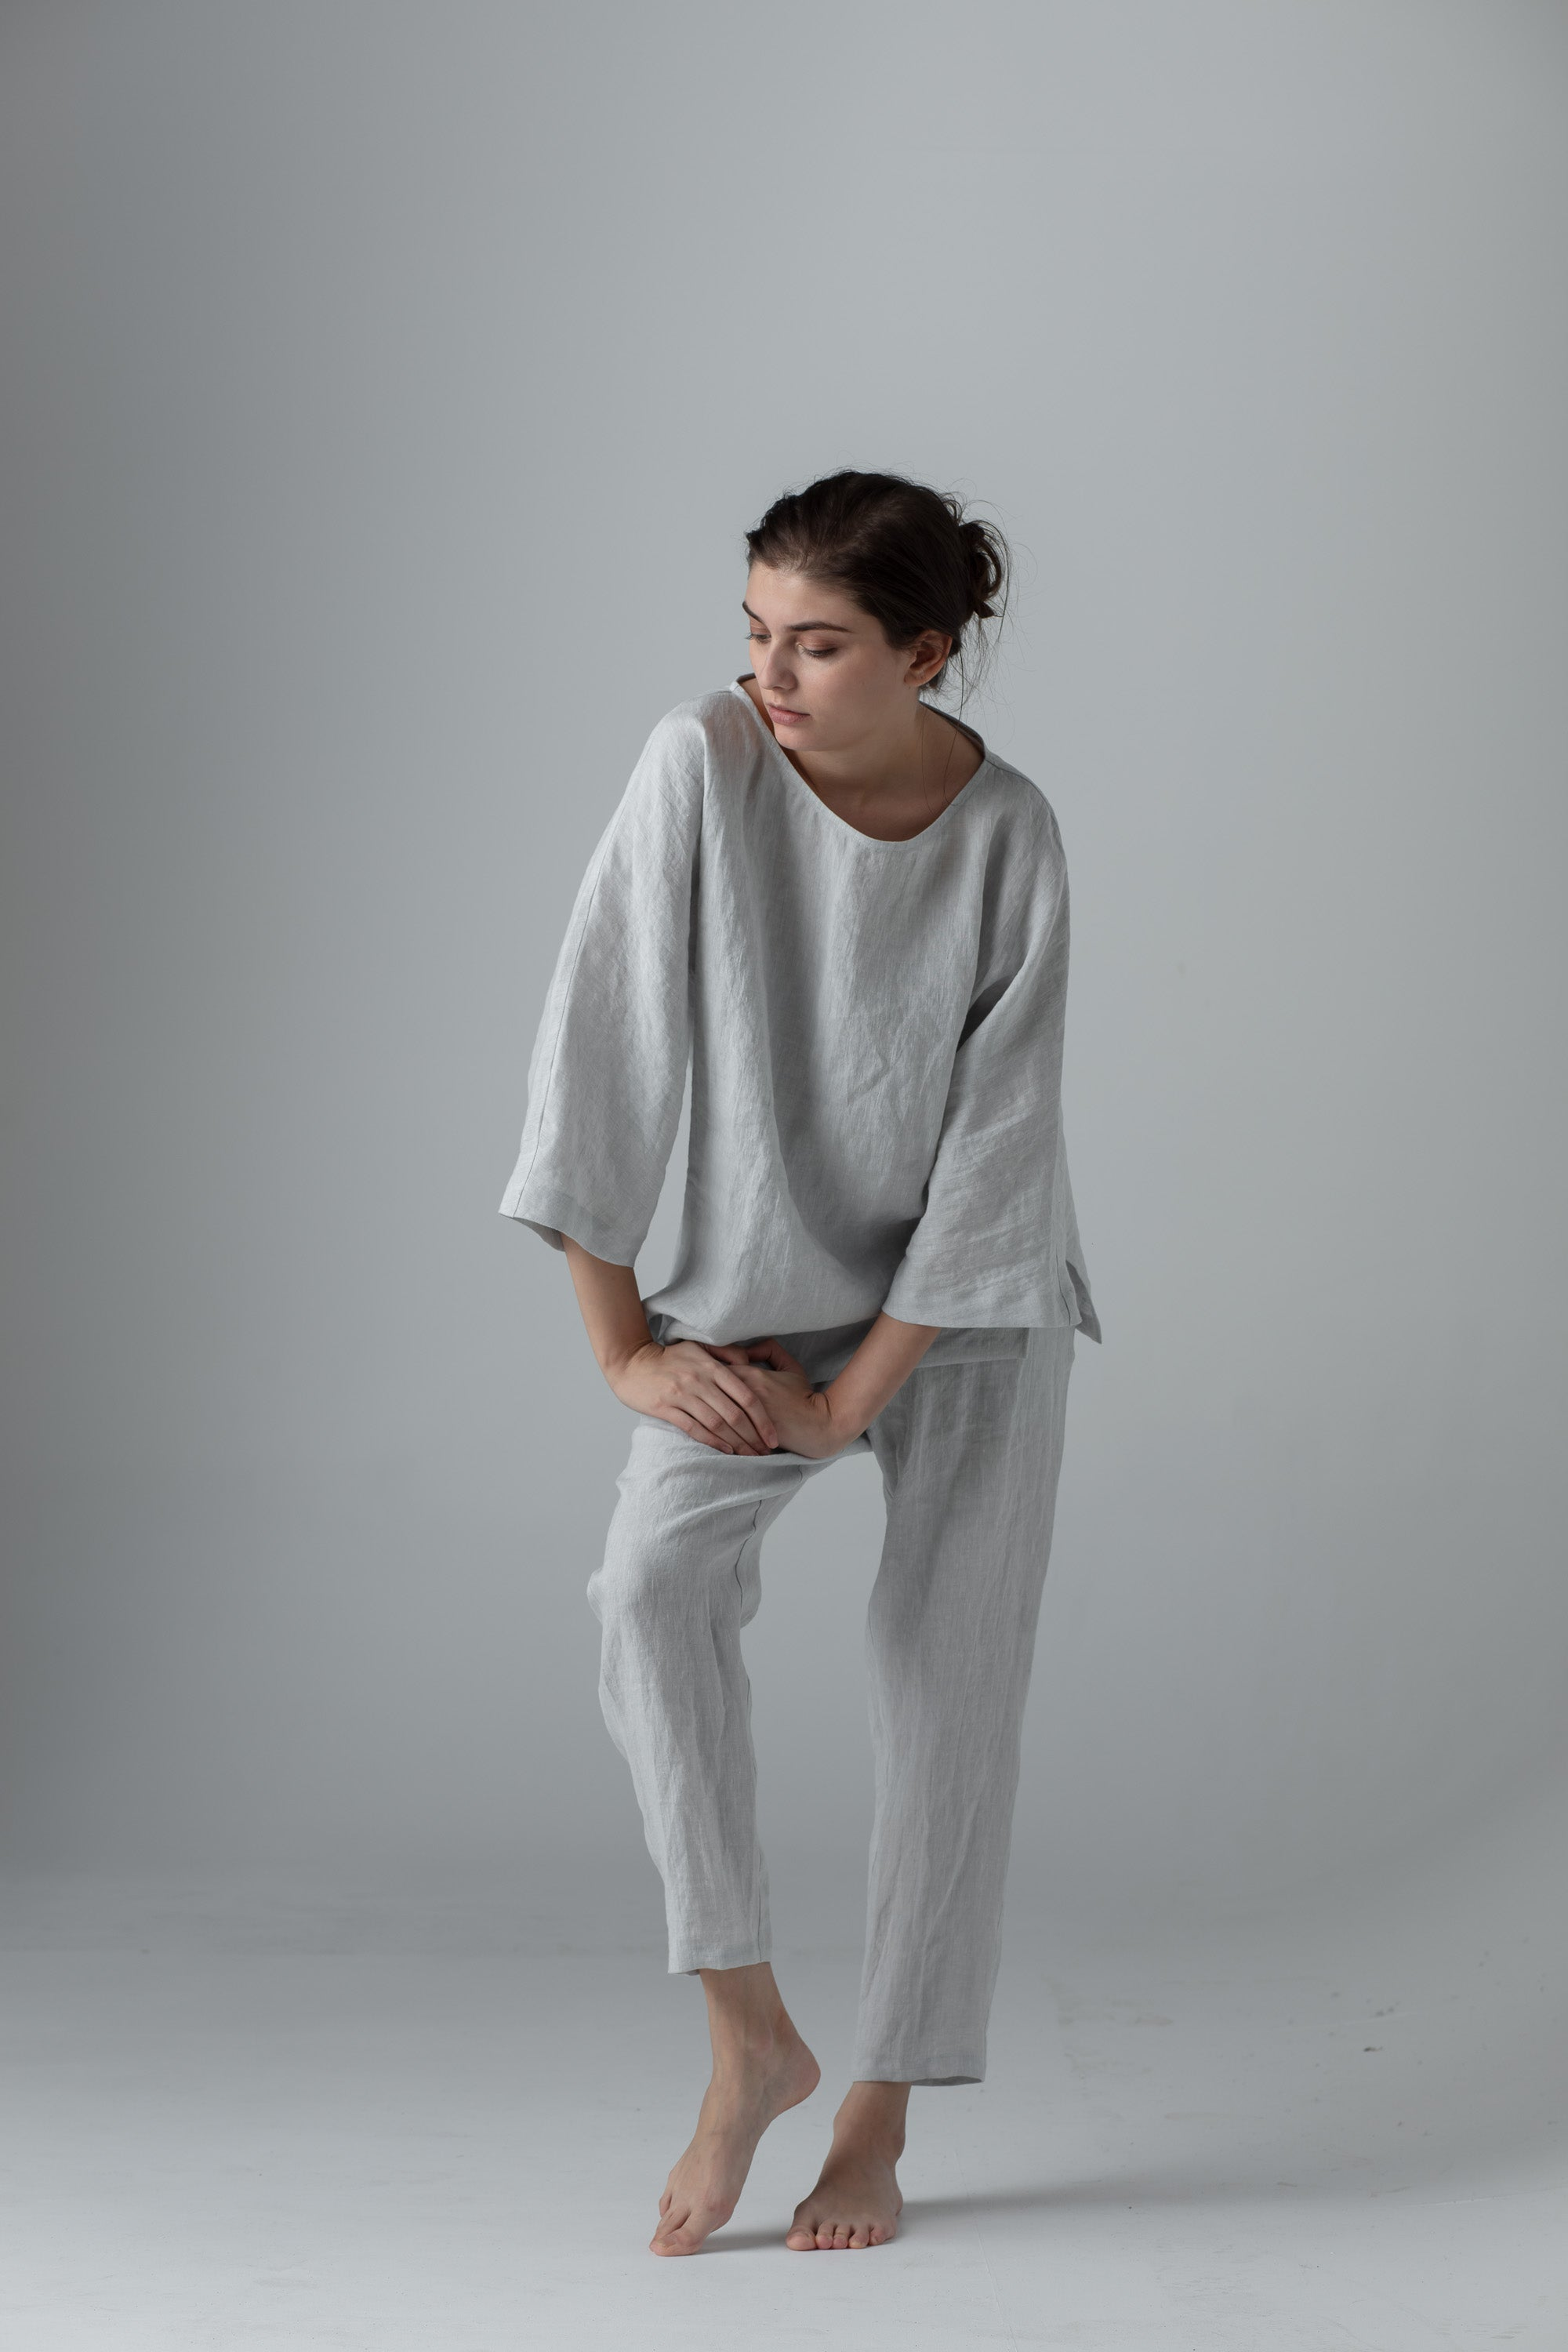 Sustainable European made linen clothing